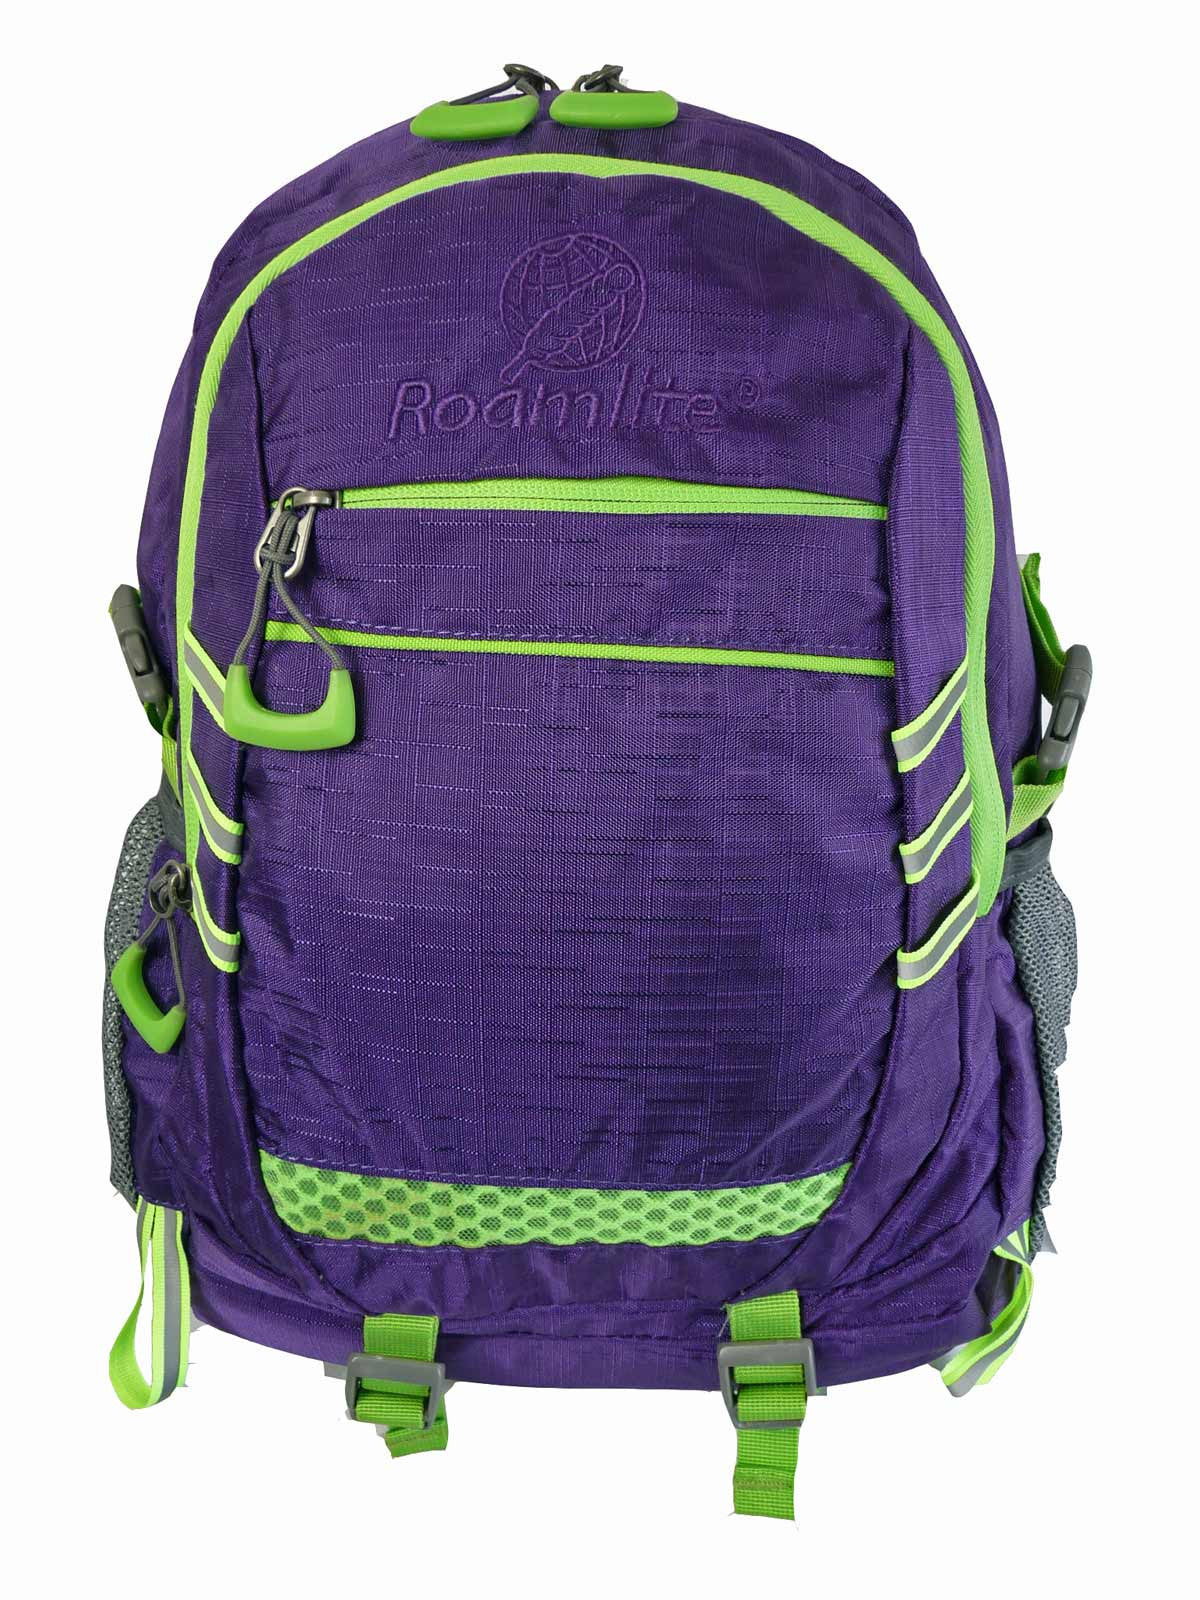 Hi High Viz Vis Backpack RL47Pu Purple Front View